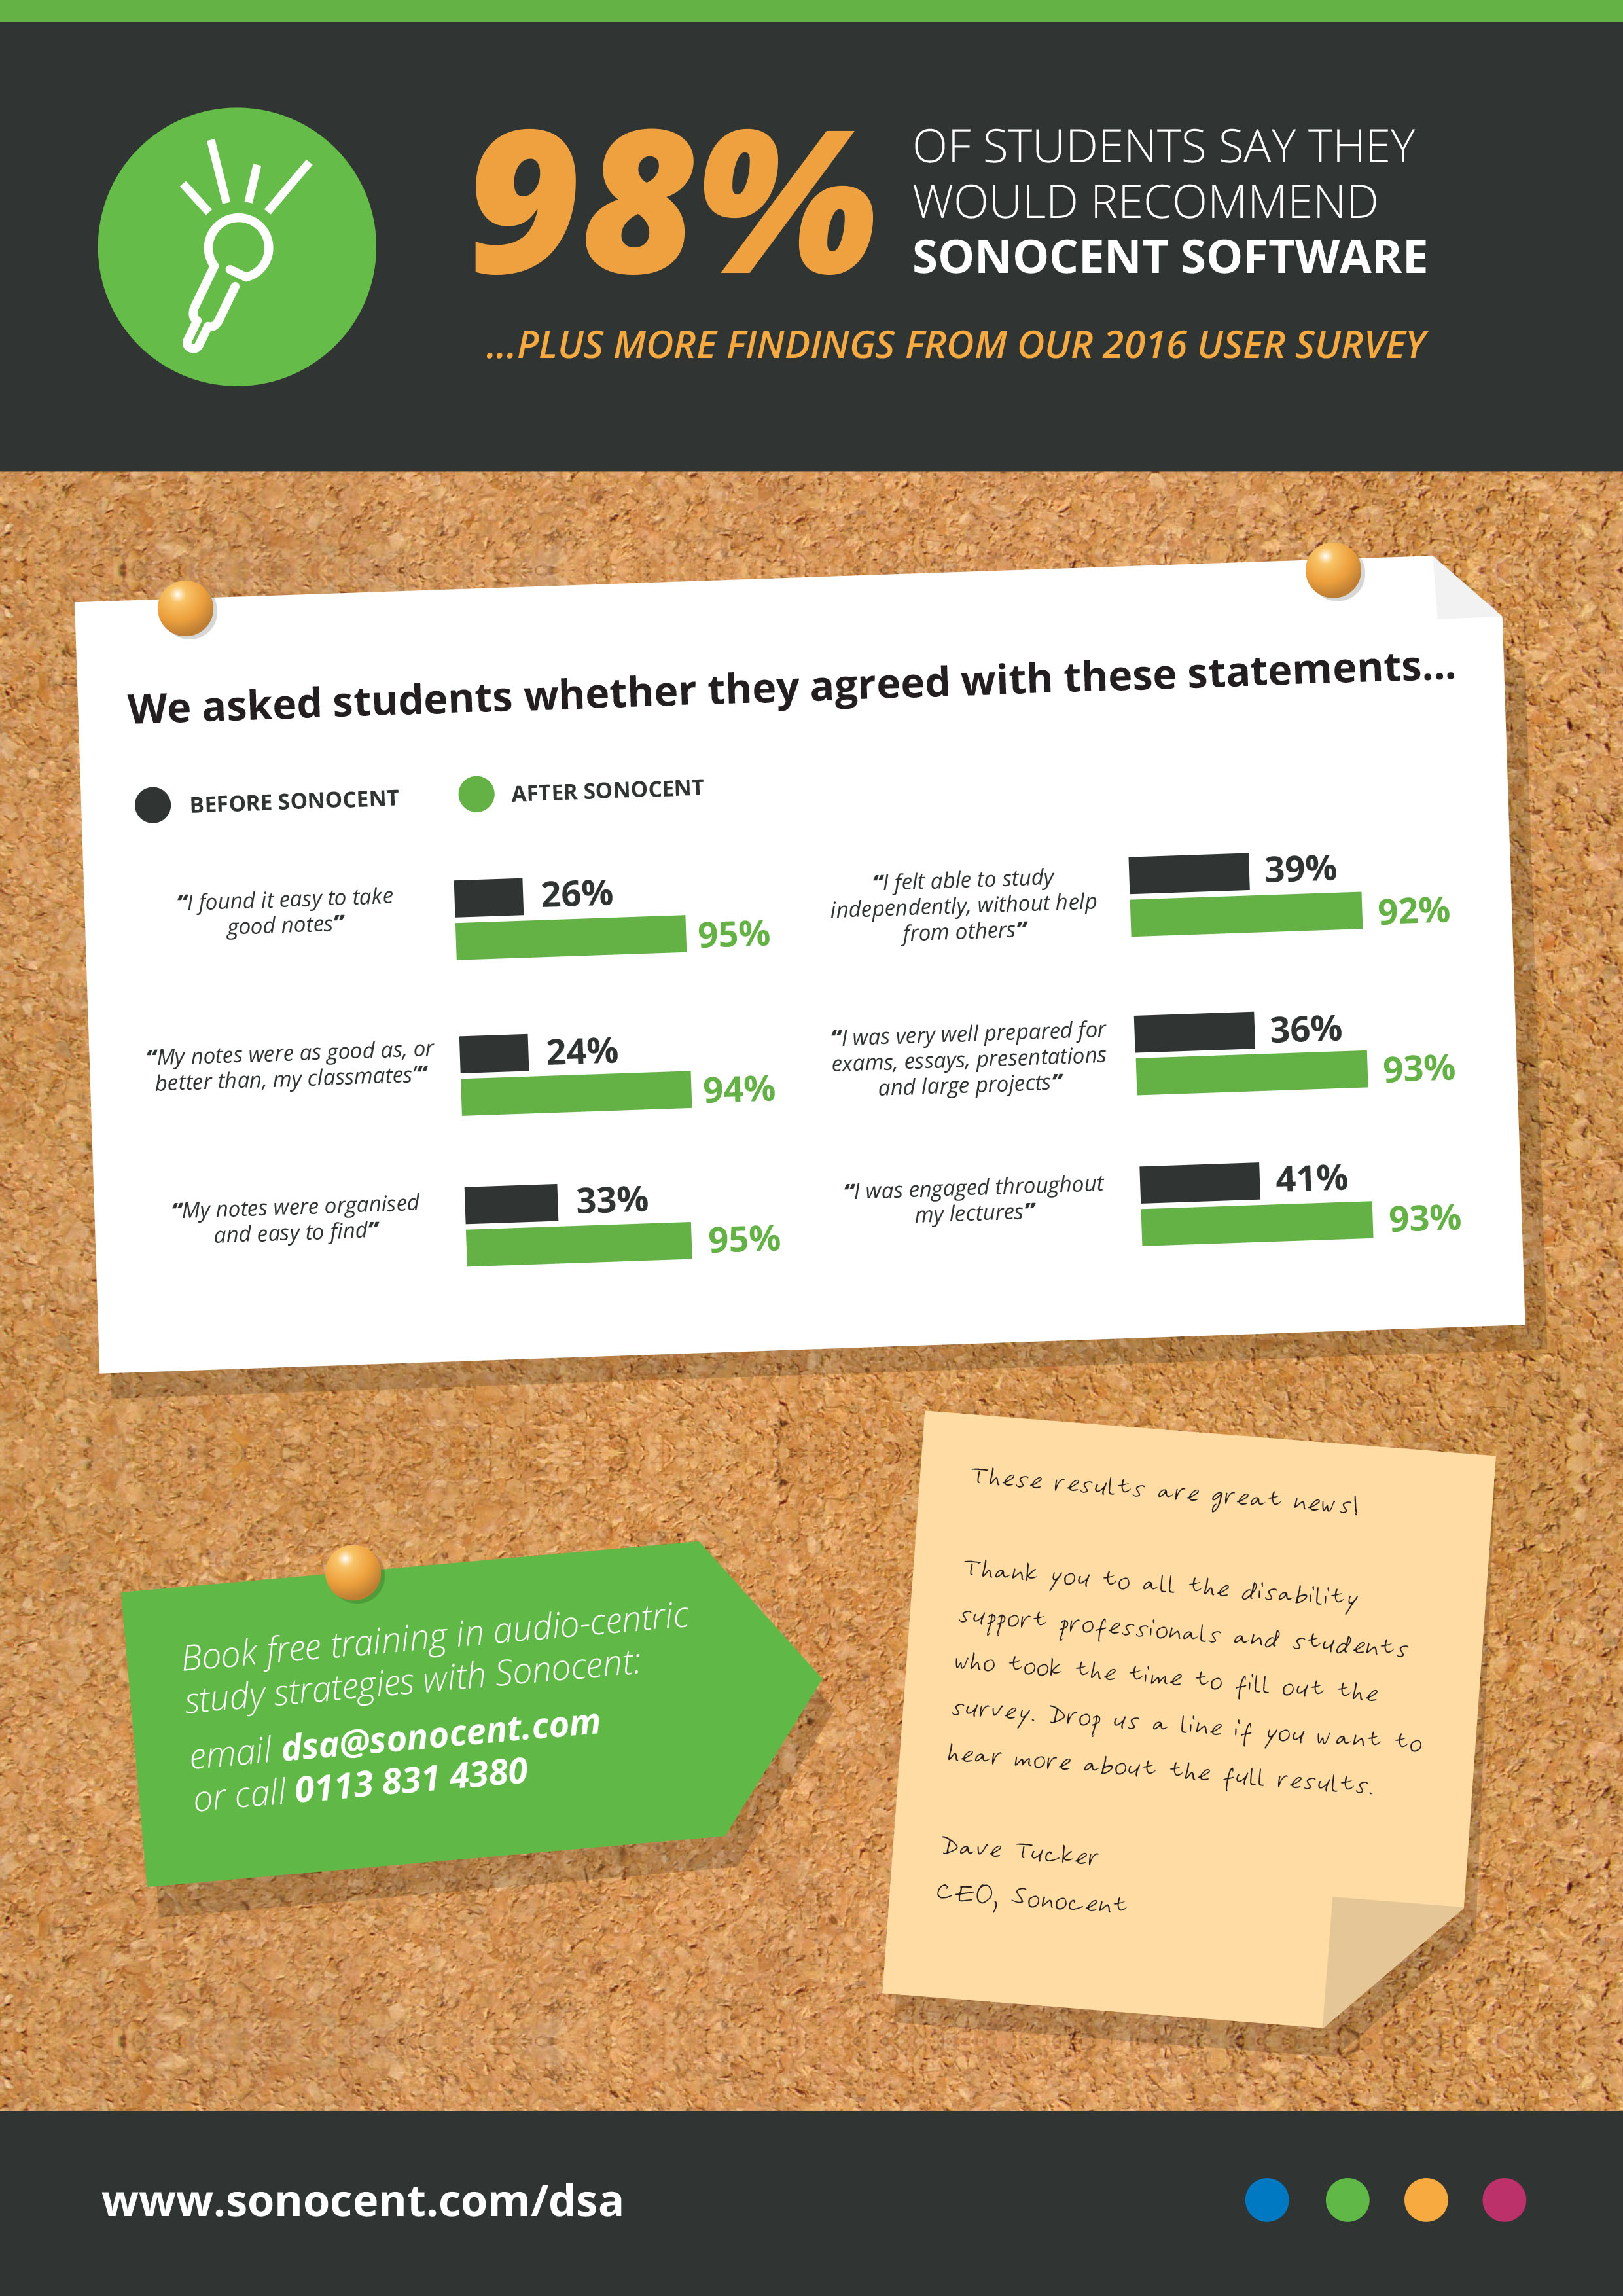 98% of Students Recommend Sonocent